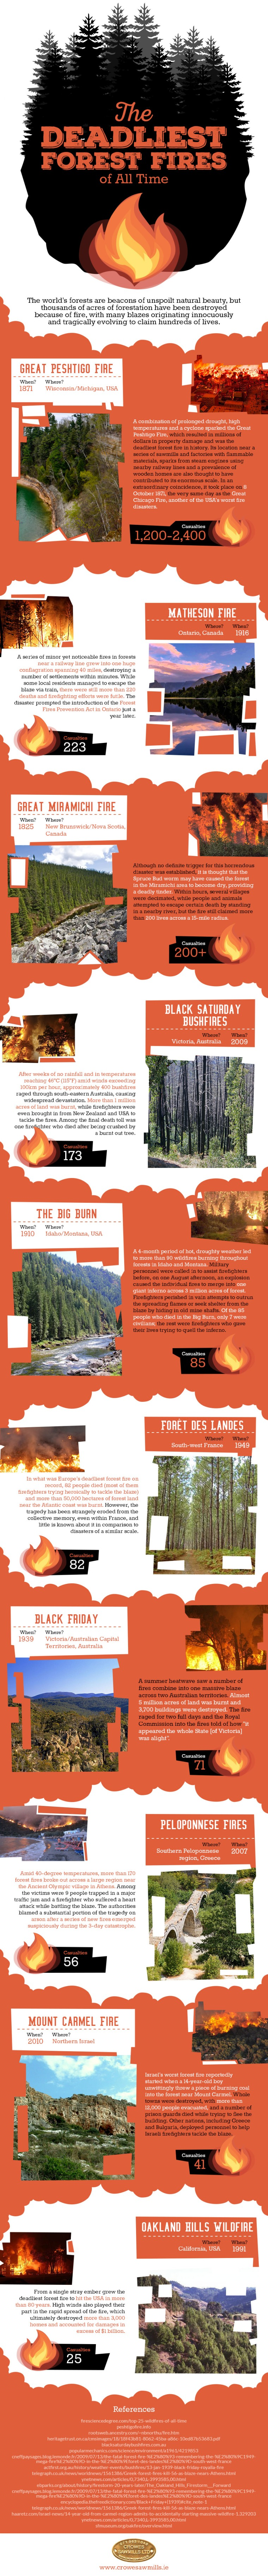 The Deadliest Forest Fires of All Time [Infographic] | ecogreenlove